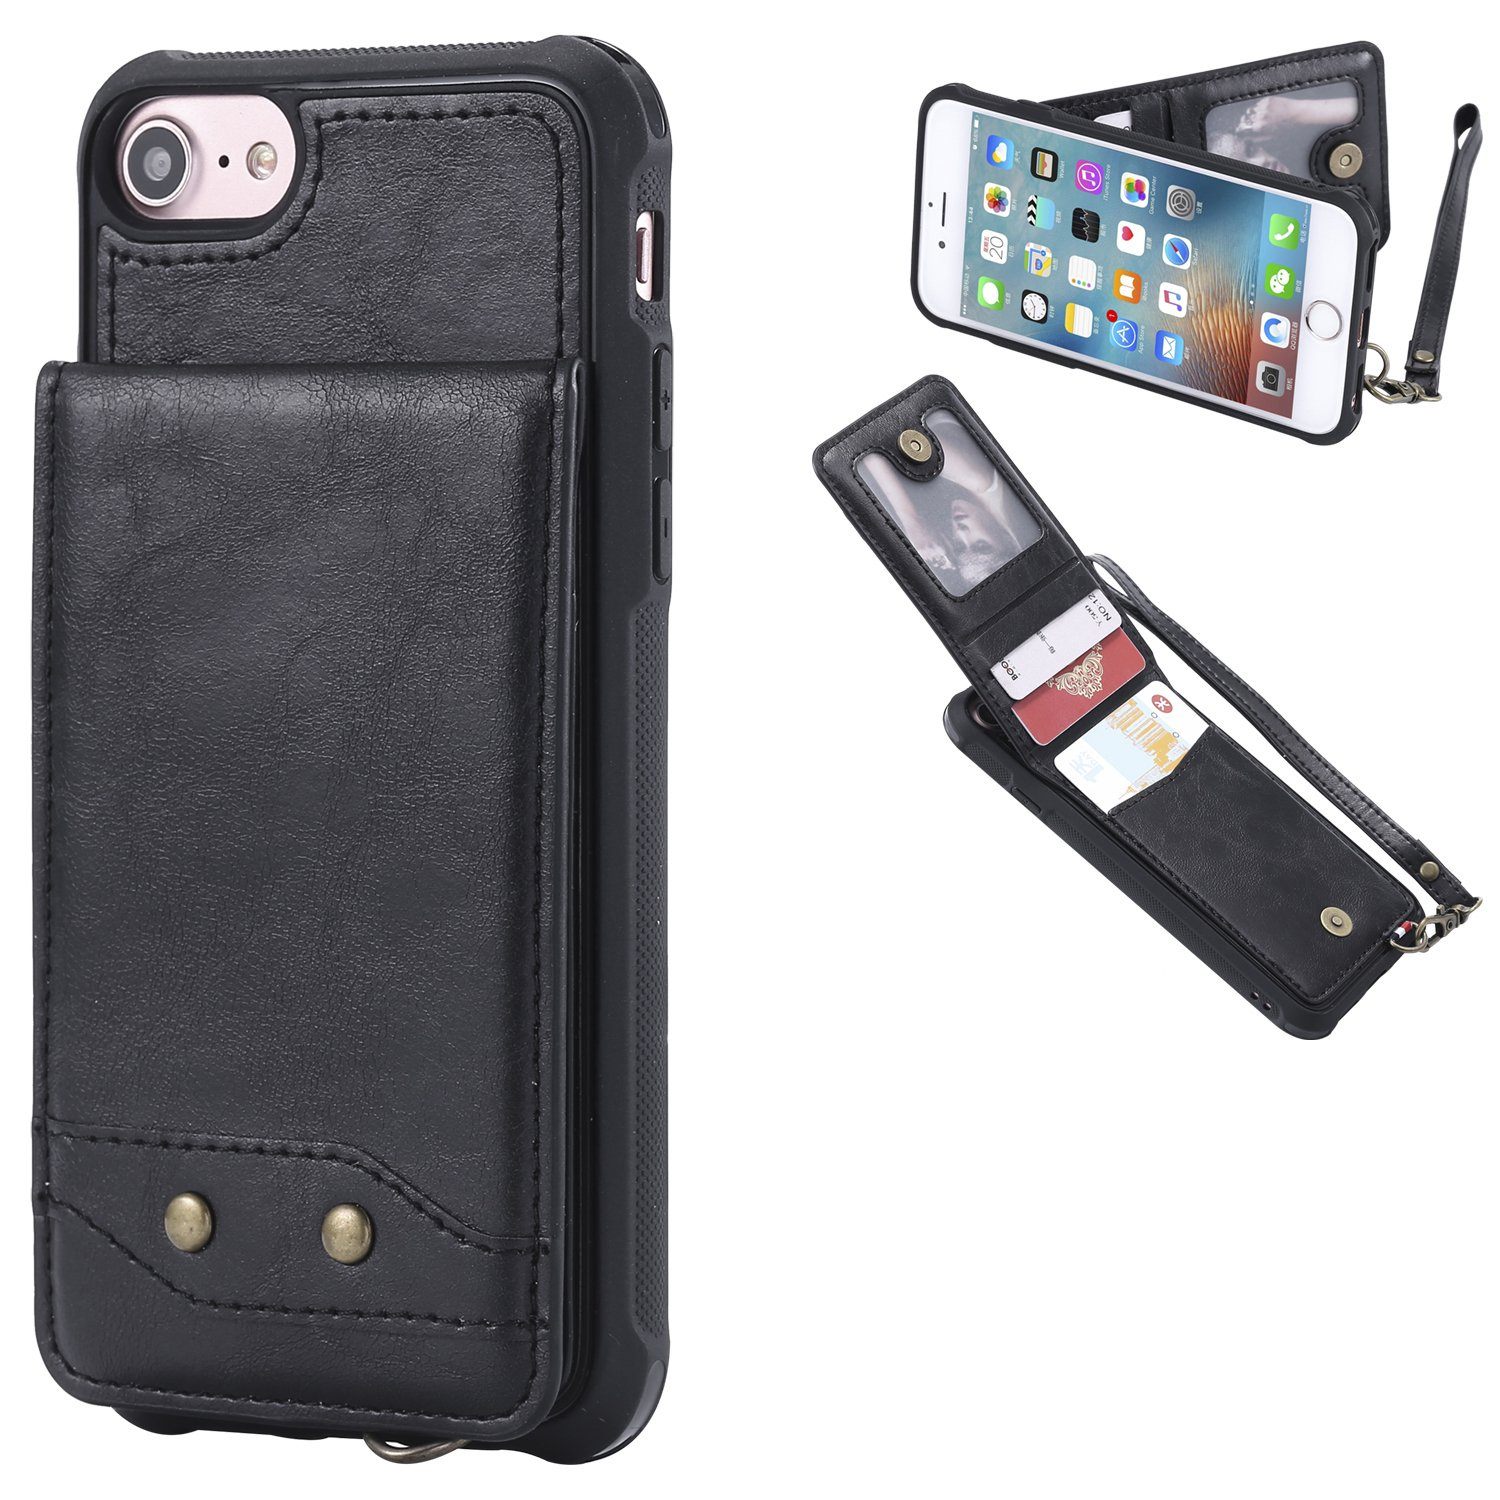 DAMONDY iPhone 6s Case, iPhone 6 Case, Luxury Wallet Purse Card Holders Design Cover Soft Shockproof Bumper Flip Leather Kickstand Magnetic Clasp With Wrist Strap Case for Apple iPhone 6s 6-black